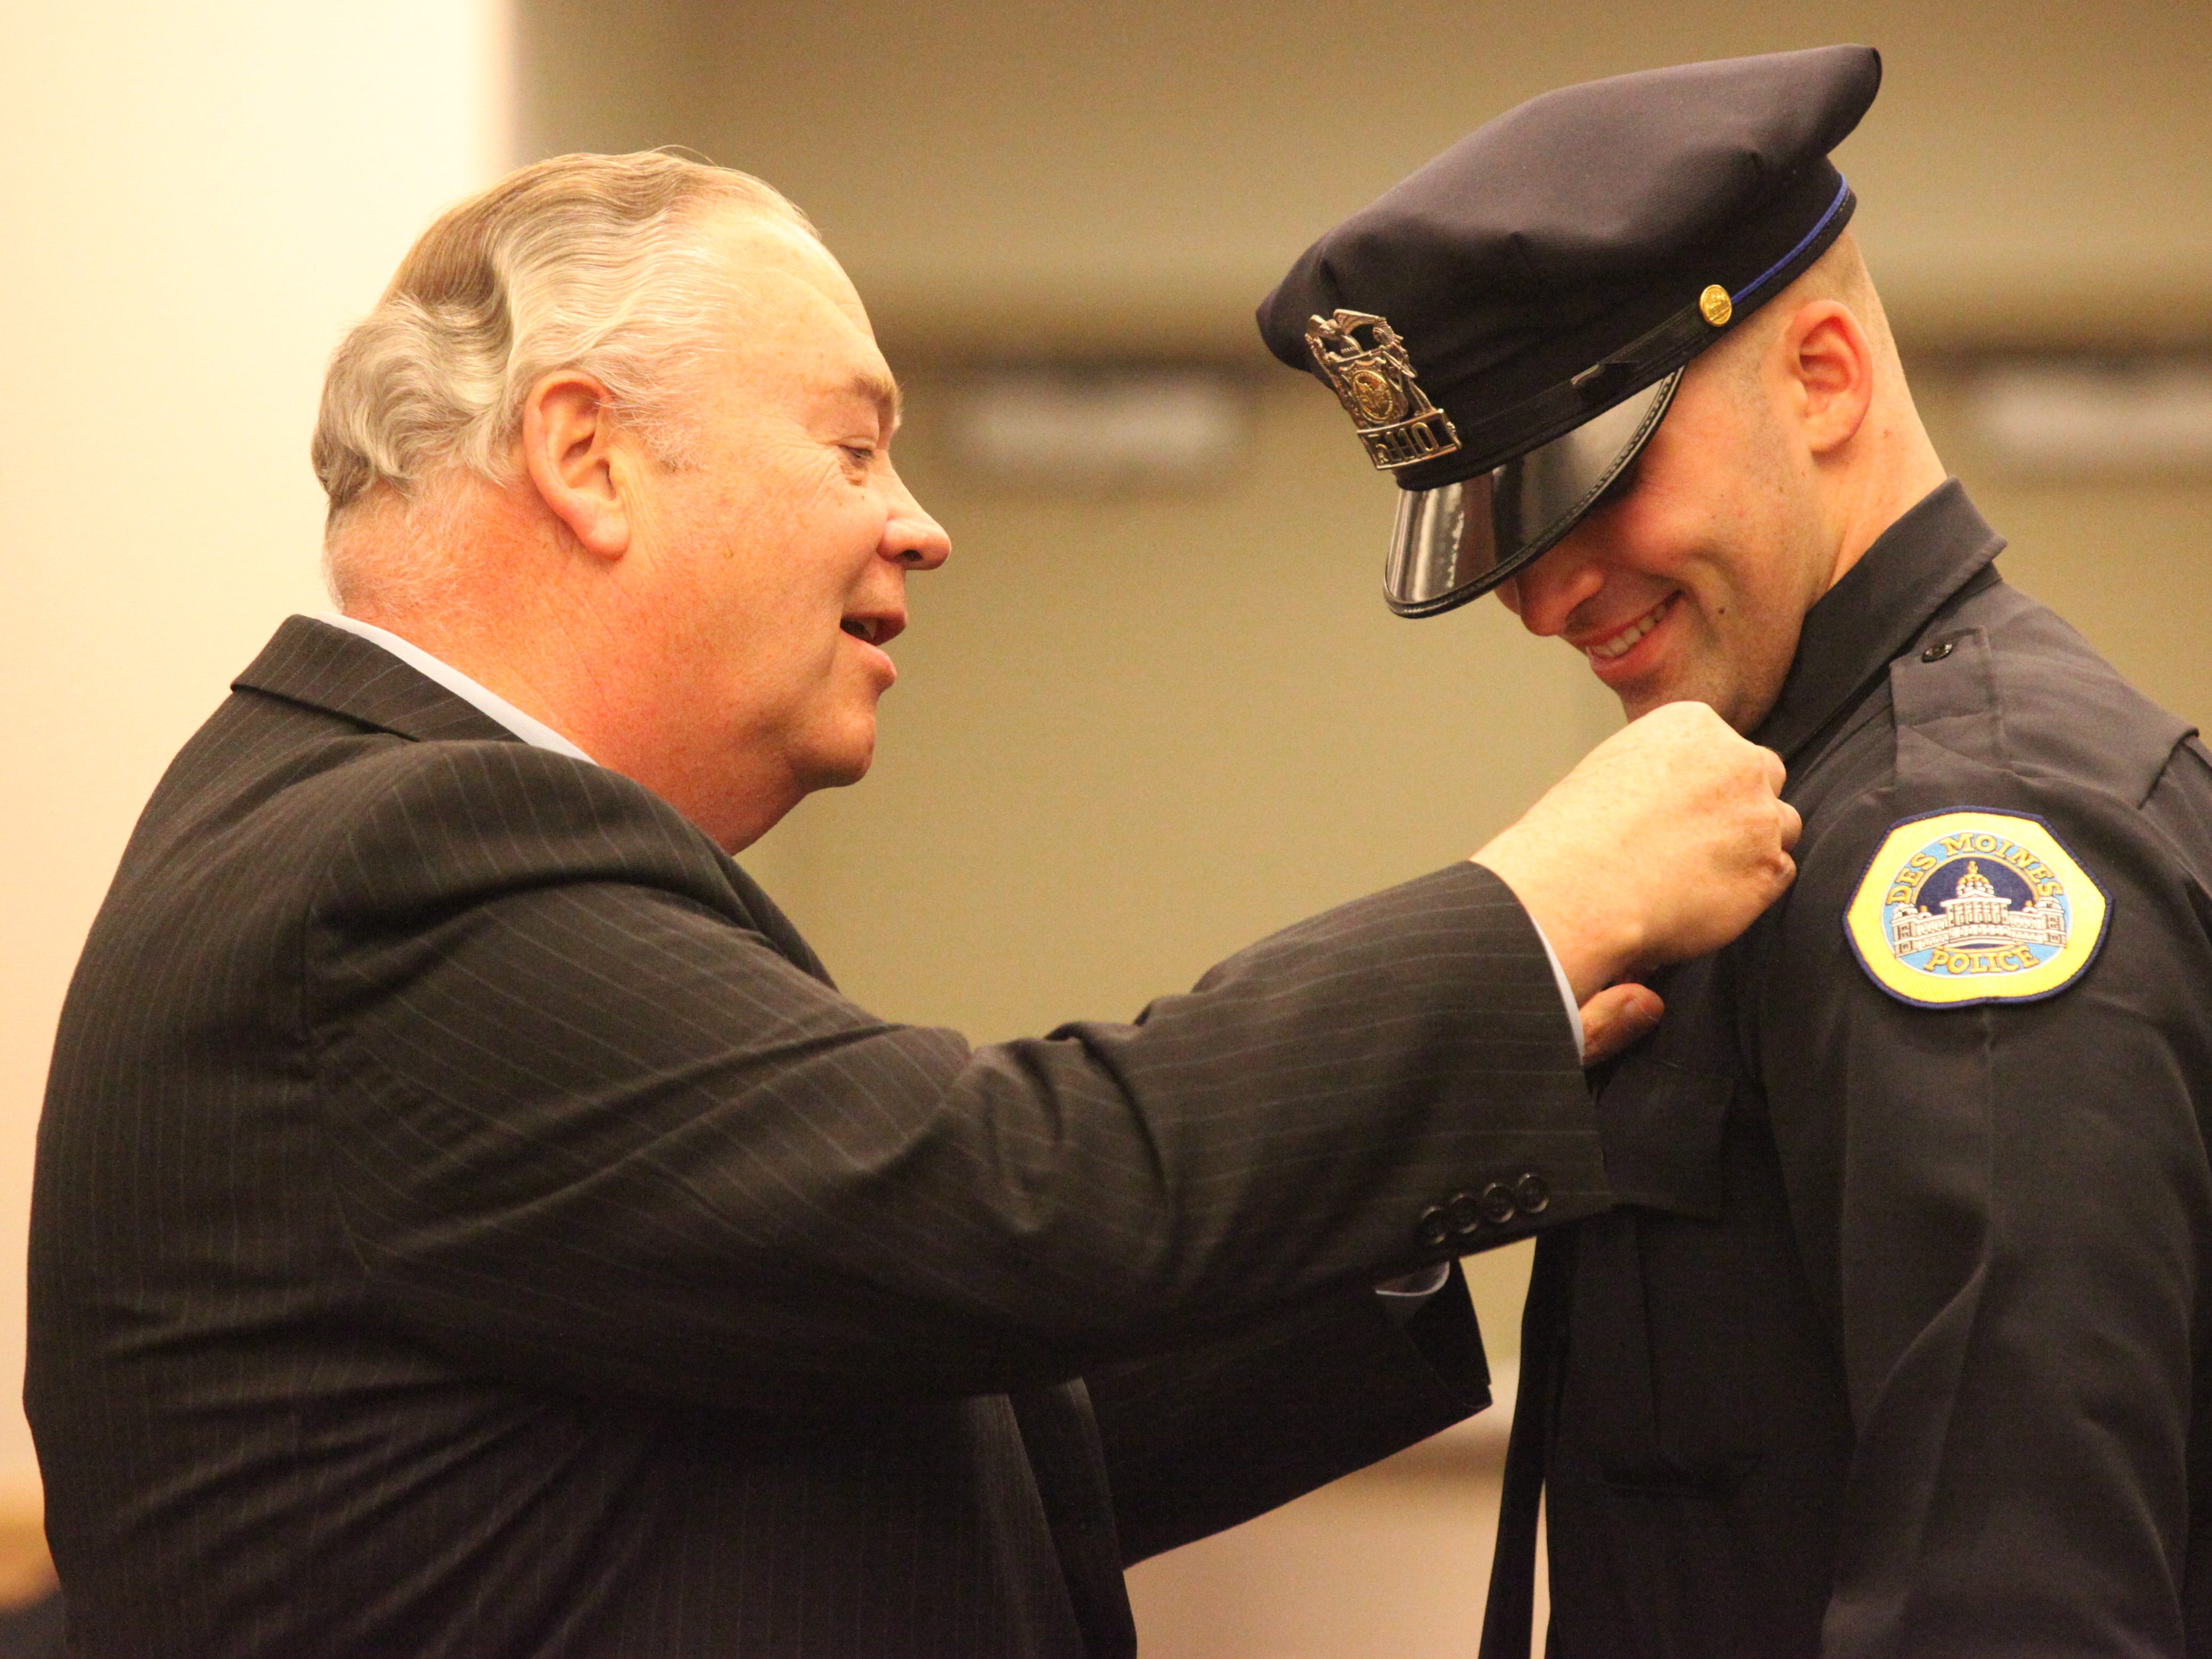 Bill McCarthy pins a badge on his nephew, Benjamin McCarthy, on March 18, 2011 at the Iowa Event Center in Des Moines. Des Moines Police Department held a graduation ceremony for 14 recruit officers. These officers  participated in a 22-week training program as part of the 70th recruit class at the Des Moines Regional Police Academy. (Andrea Melendez/The Register)